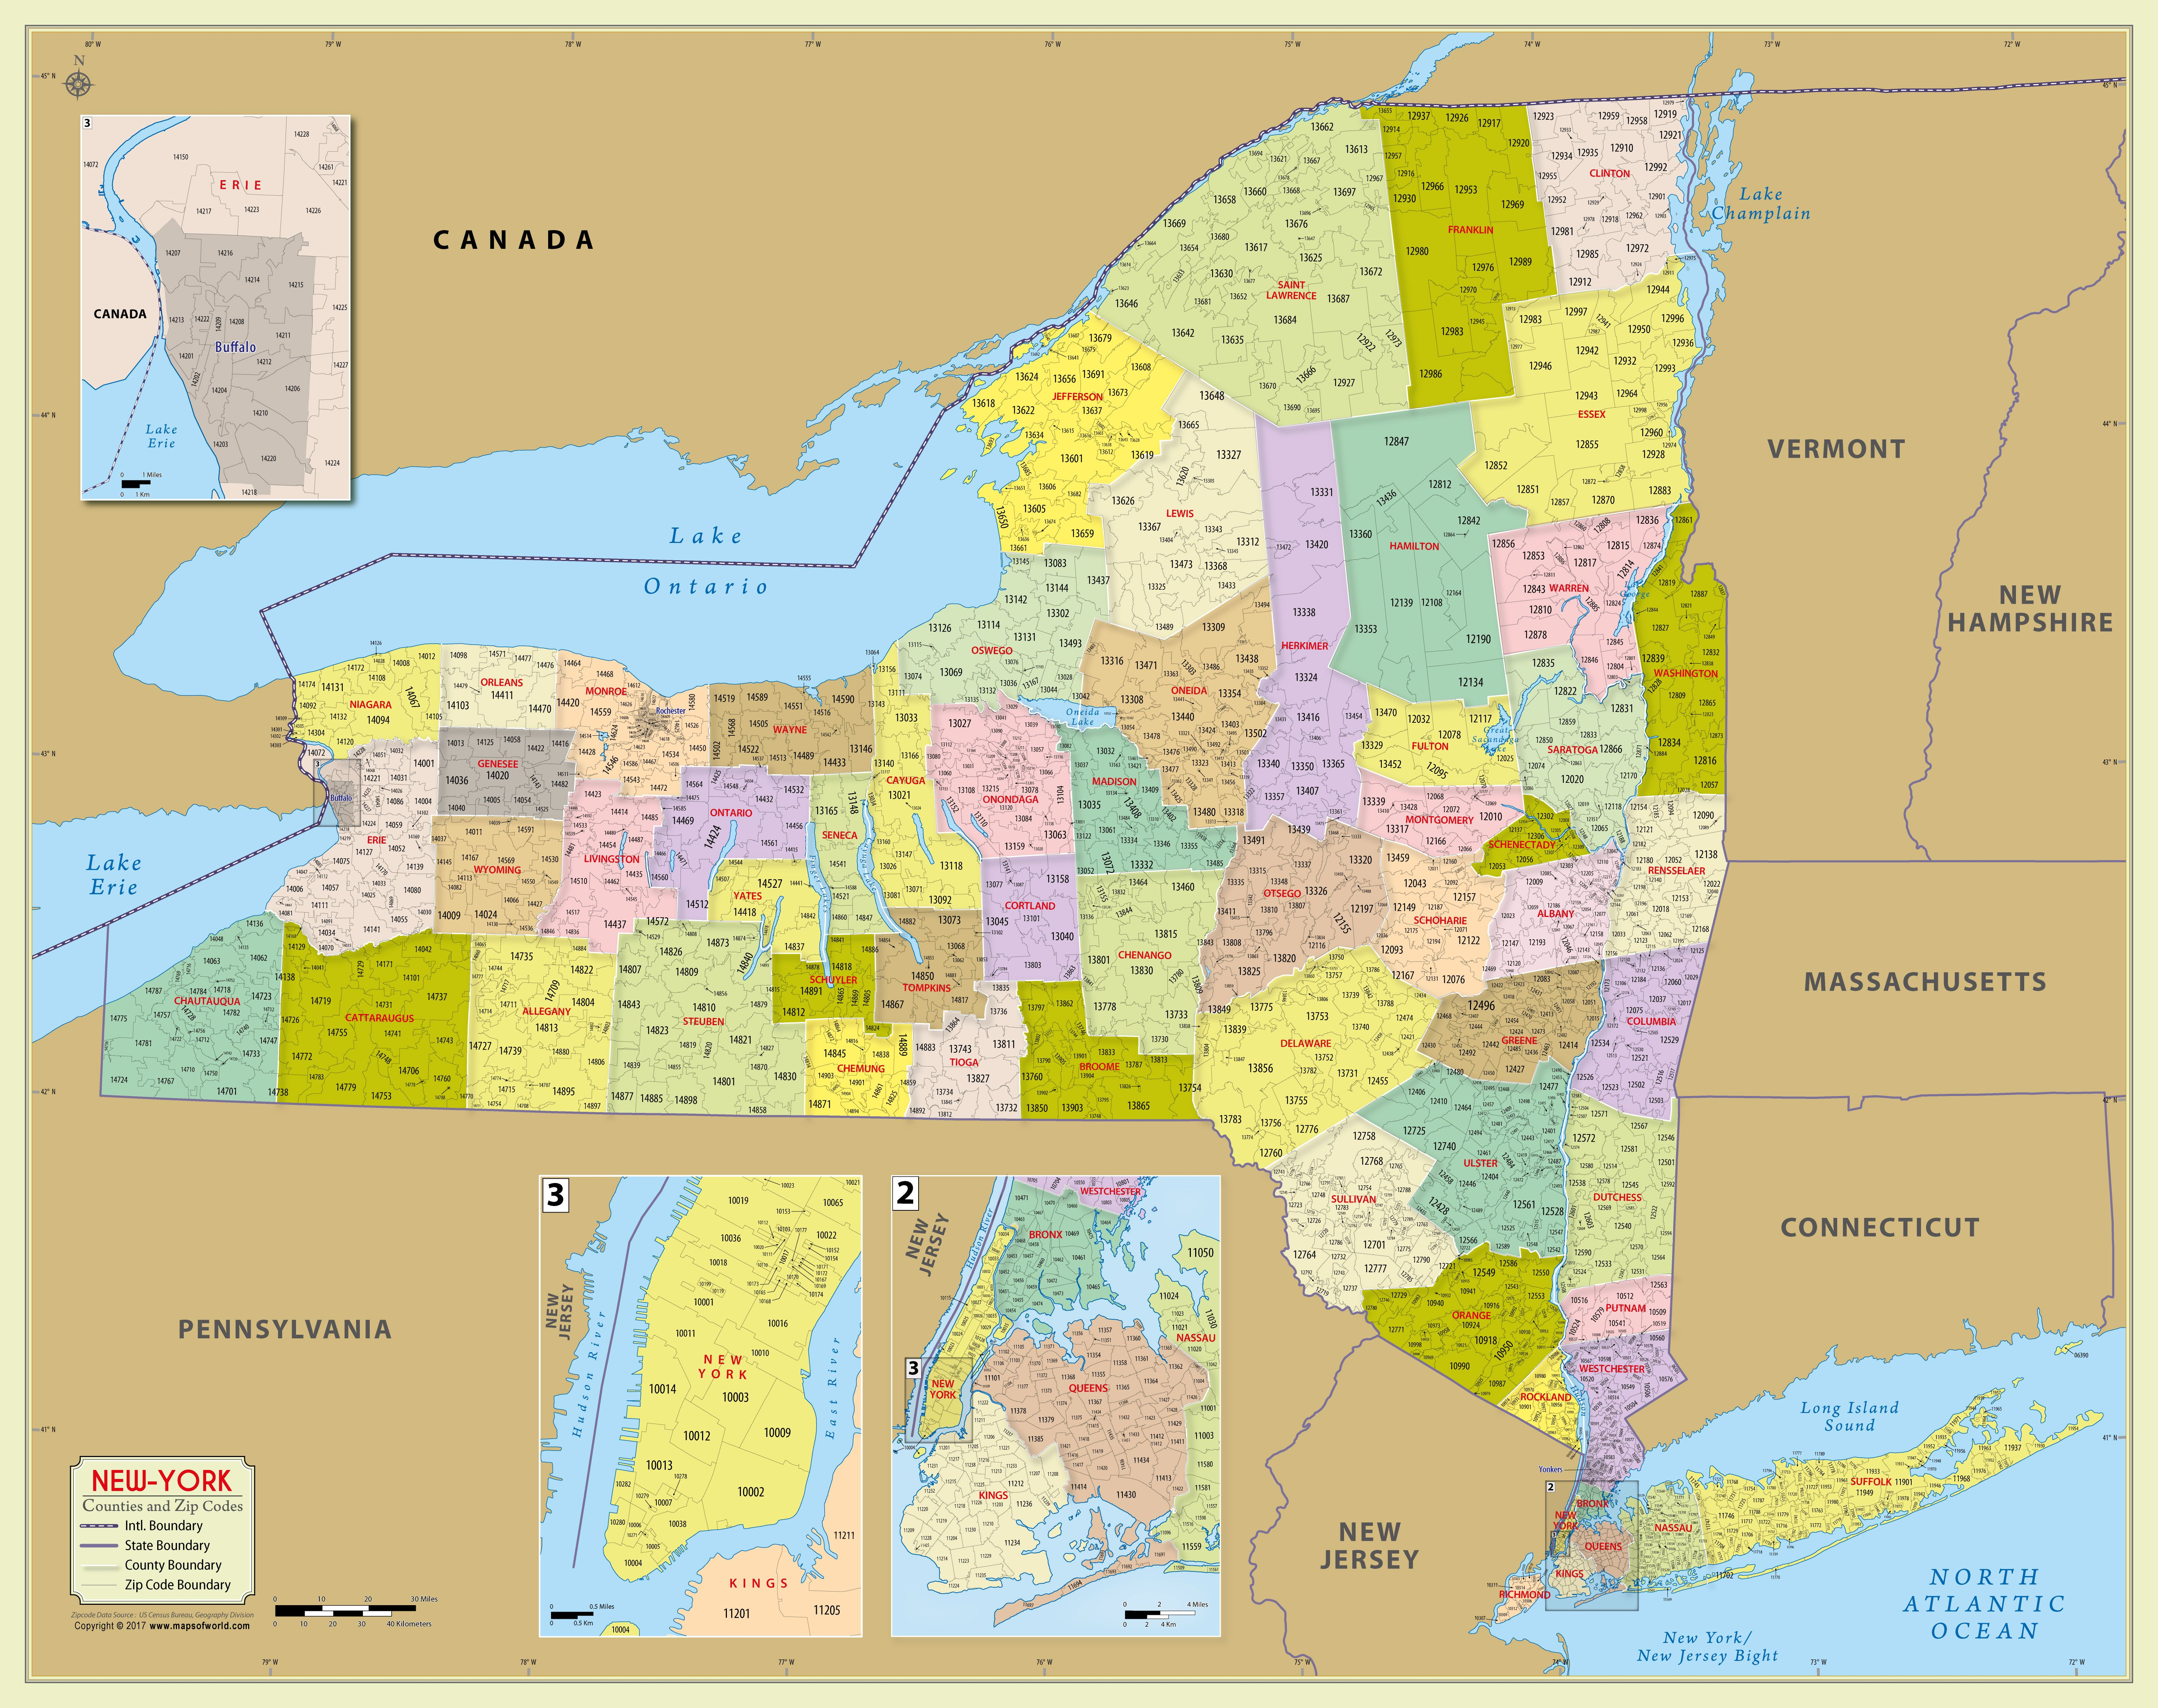 New York Zip Code Map New York Zip Code Map With Counties (48″ W x 38″ H) (With images